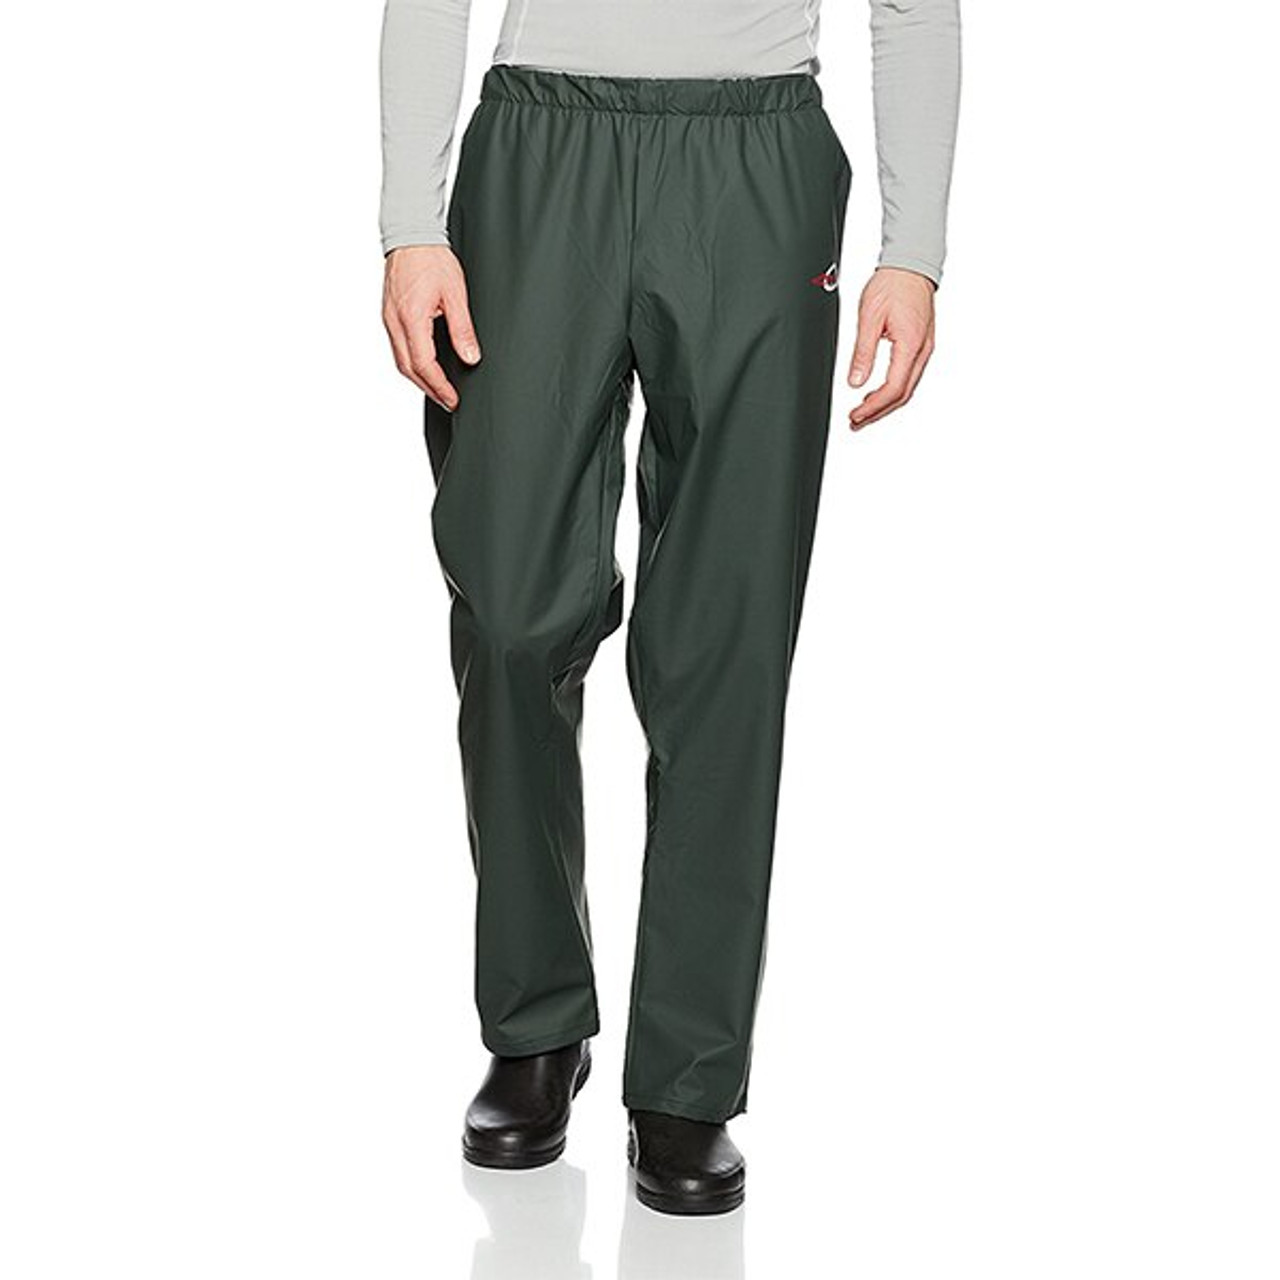 half price affordable price 100% authentic Flexothane Classic Rotterdam Waterproof Trousers - Olive Green